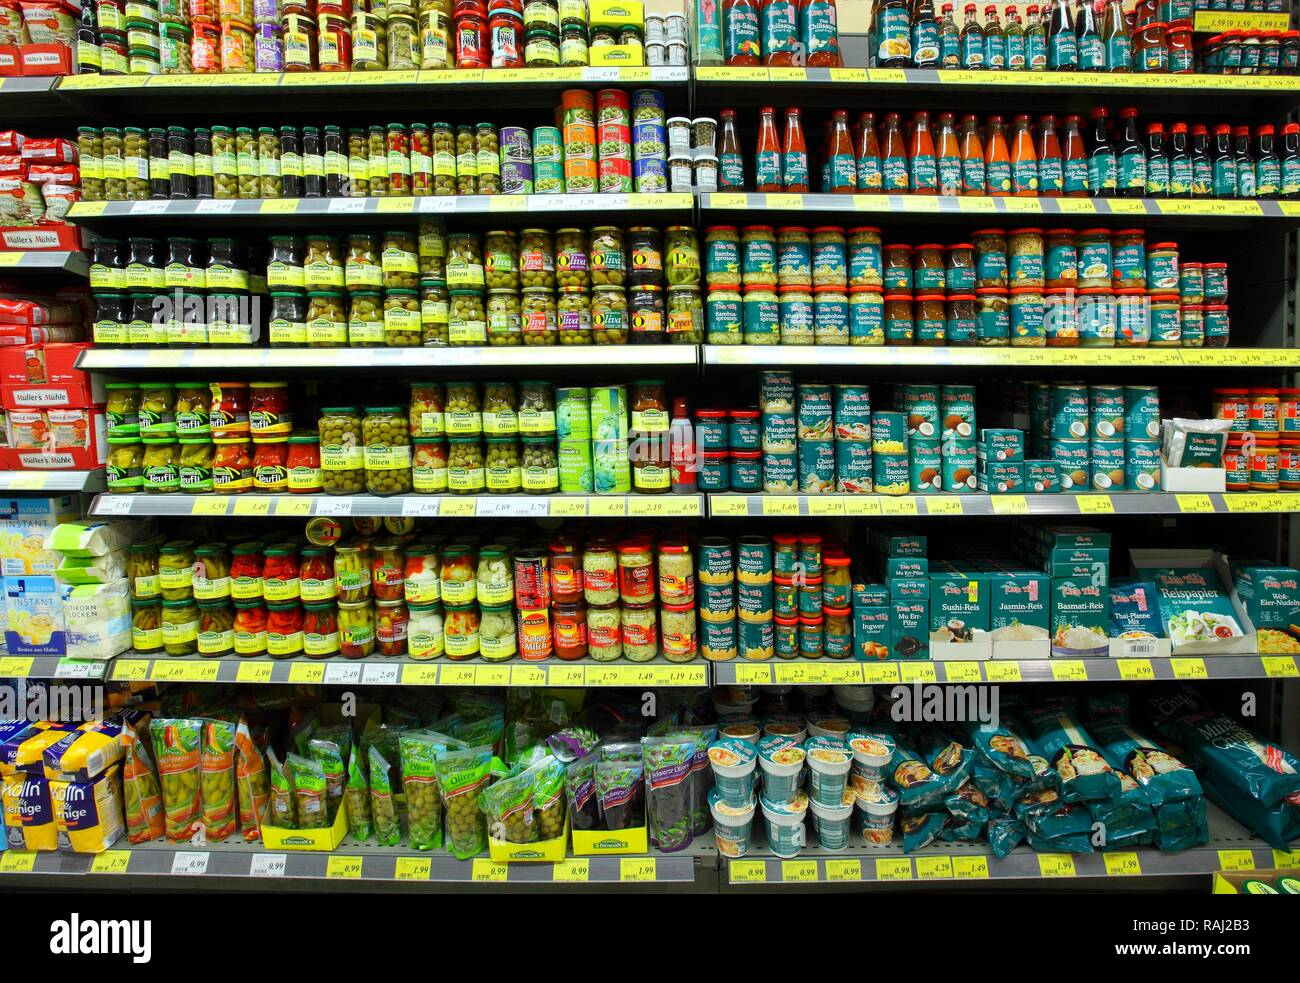 Shelves with foreign specialties, food, self-service, food department, supermarket - Stock Image